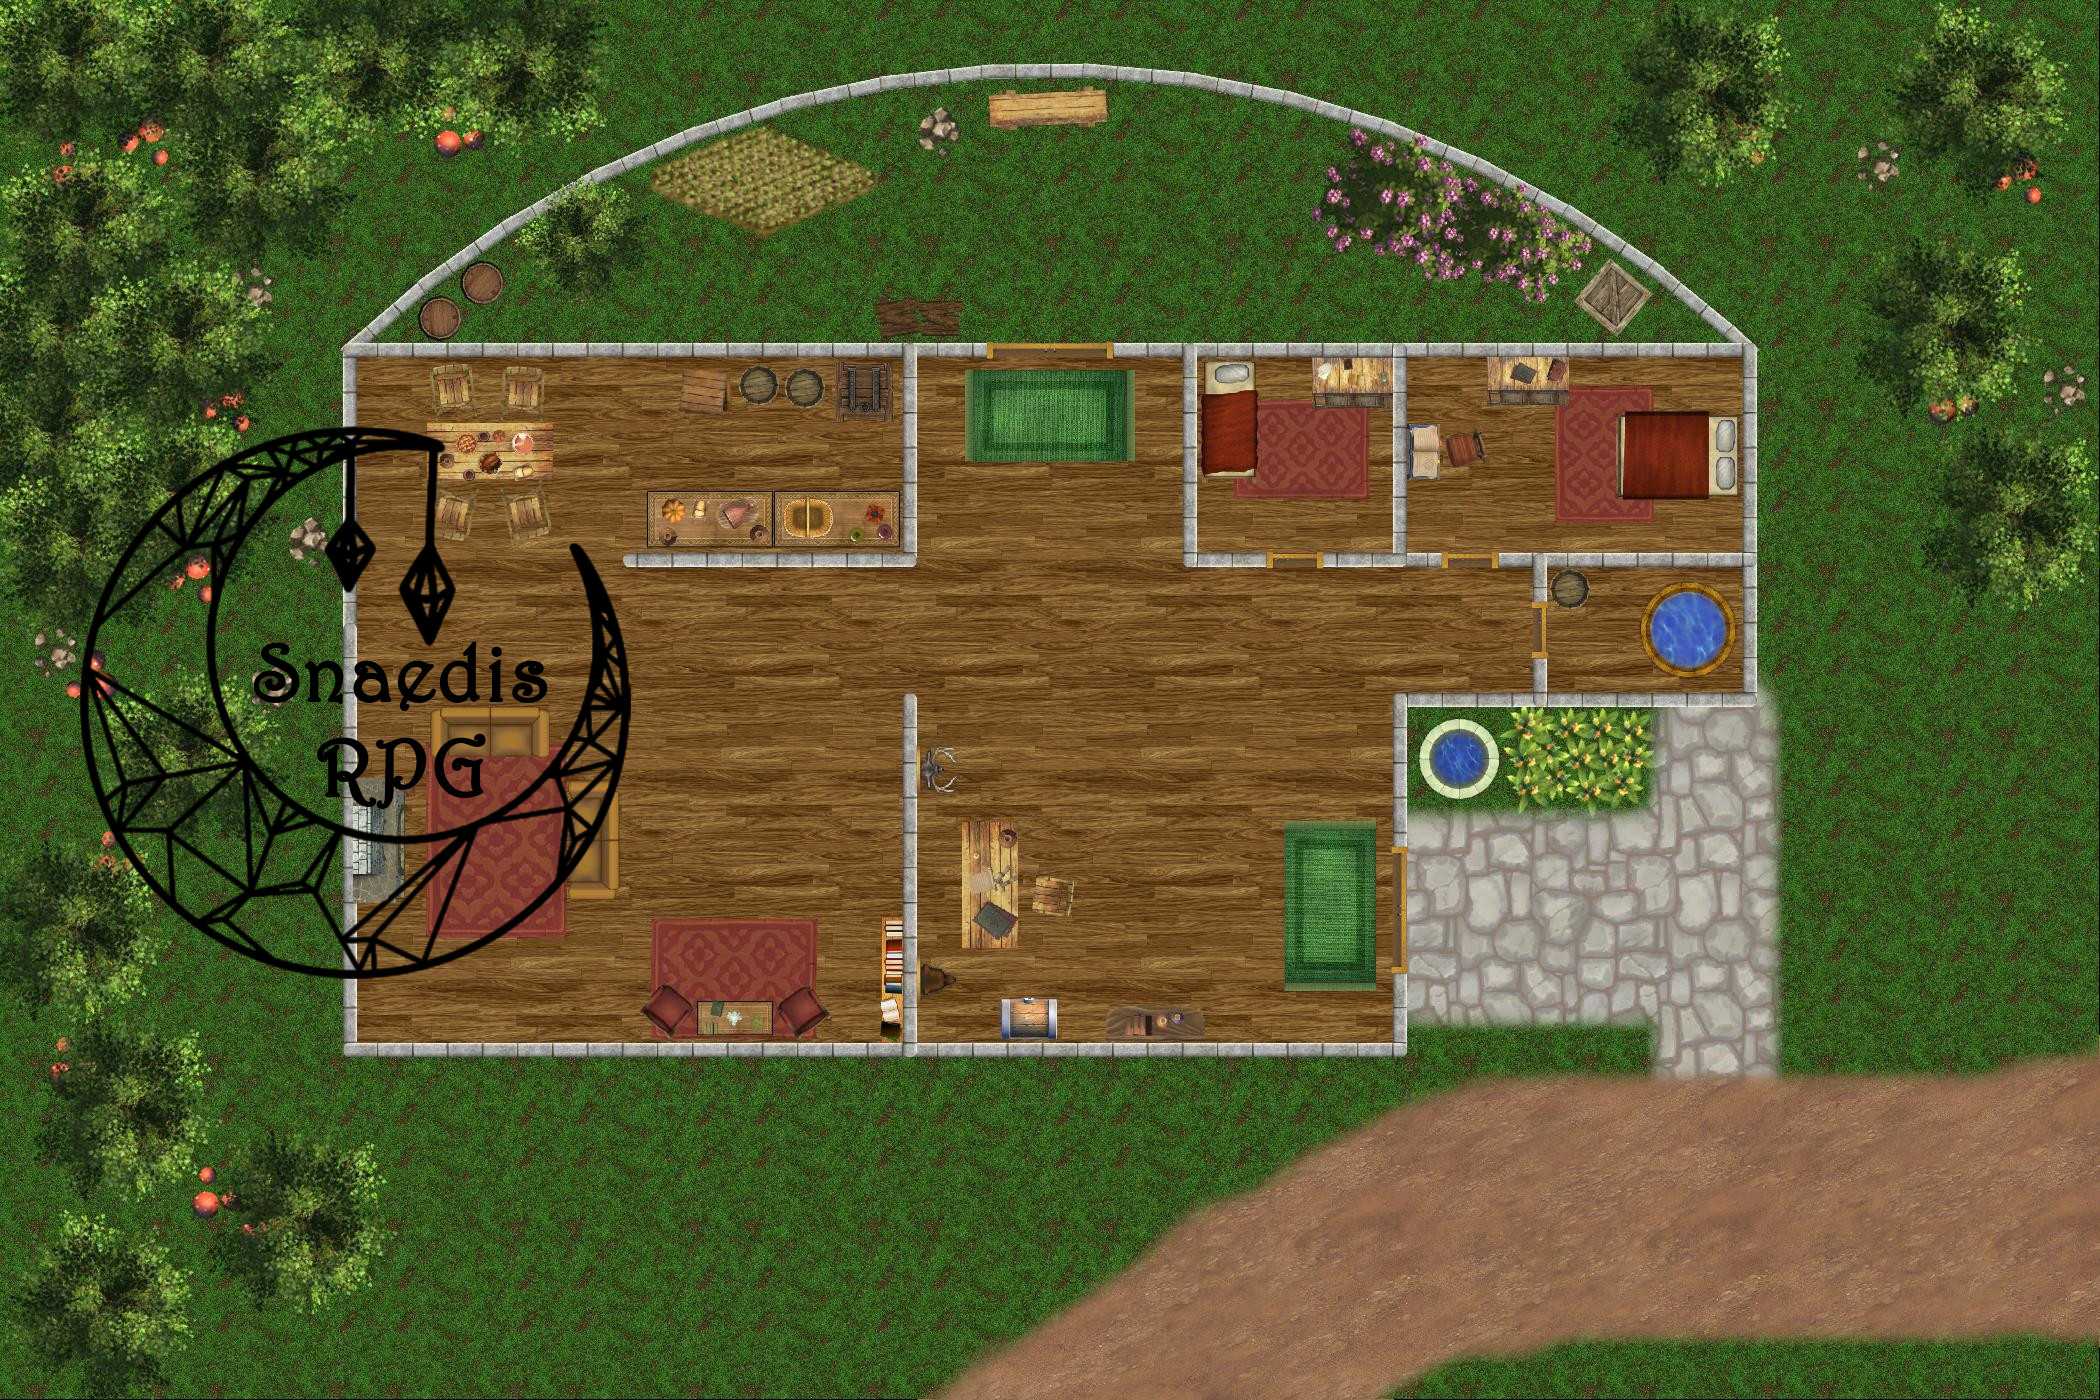 Full map display of House of Cleome map with Snaedis RPG logo